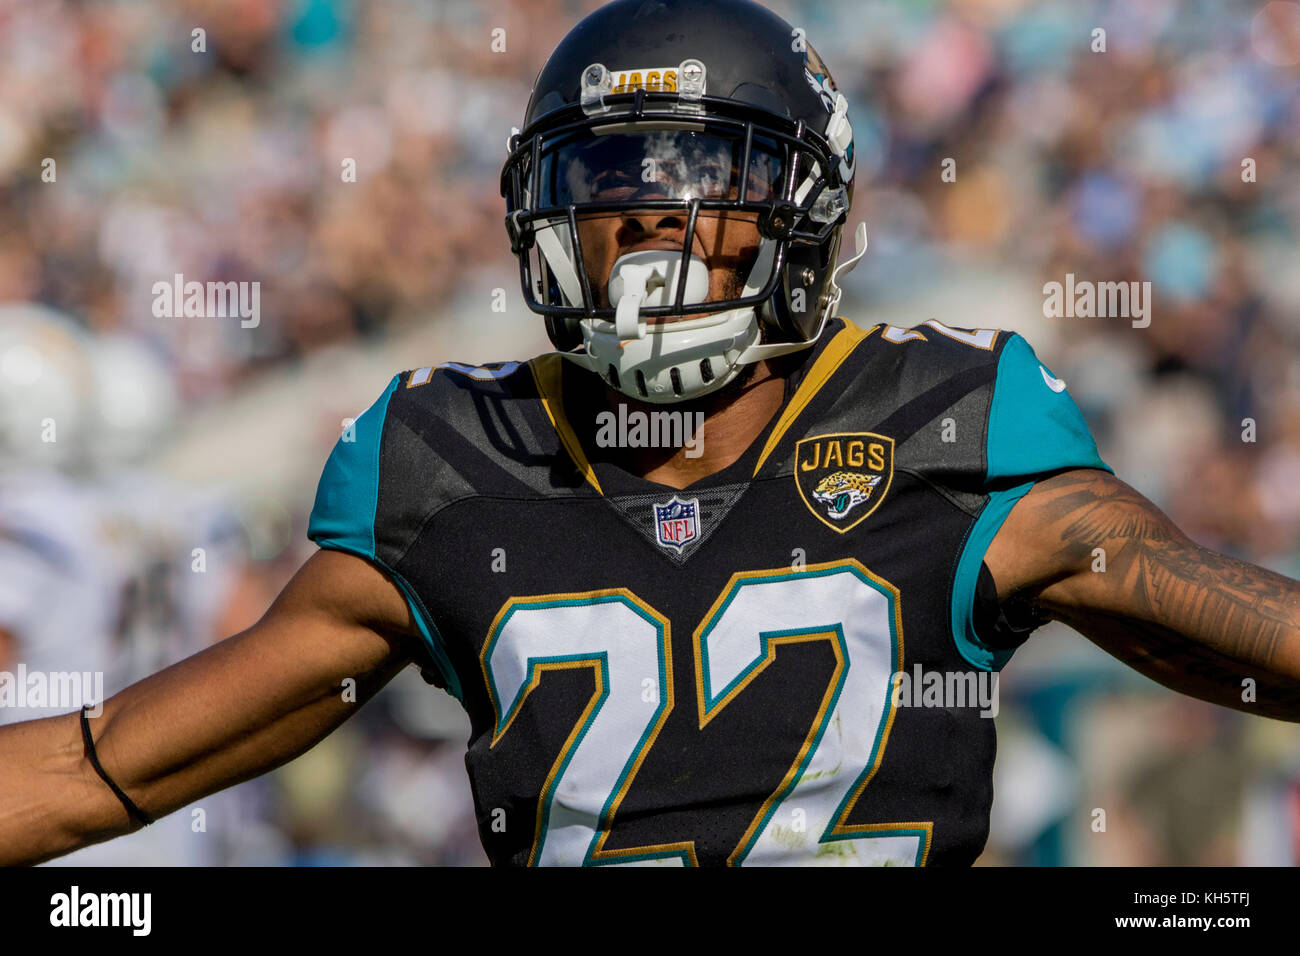 Jacksonville, FL, USA. 12th Nov, 2017. Jacksonville Jaguars cornerback Aaron Colvin (22) celebrates during the NFL - Stock Image